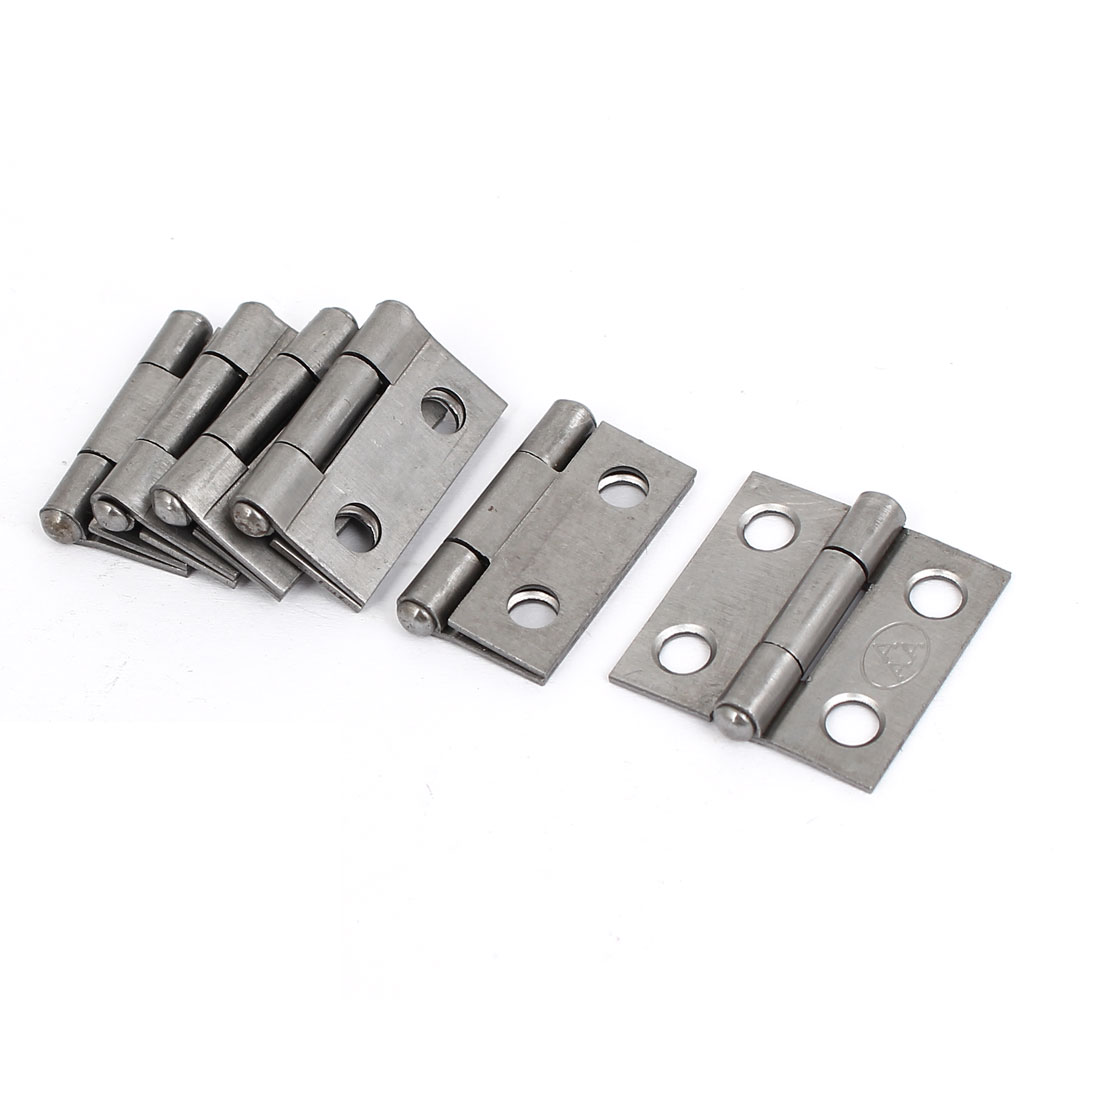 "Cupboard Cabinet Furniture Hardware Folding Door Butt Hinges Silver Gray 1"" Long 6pcs"